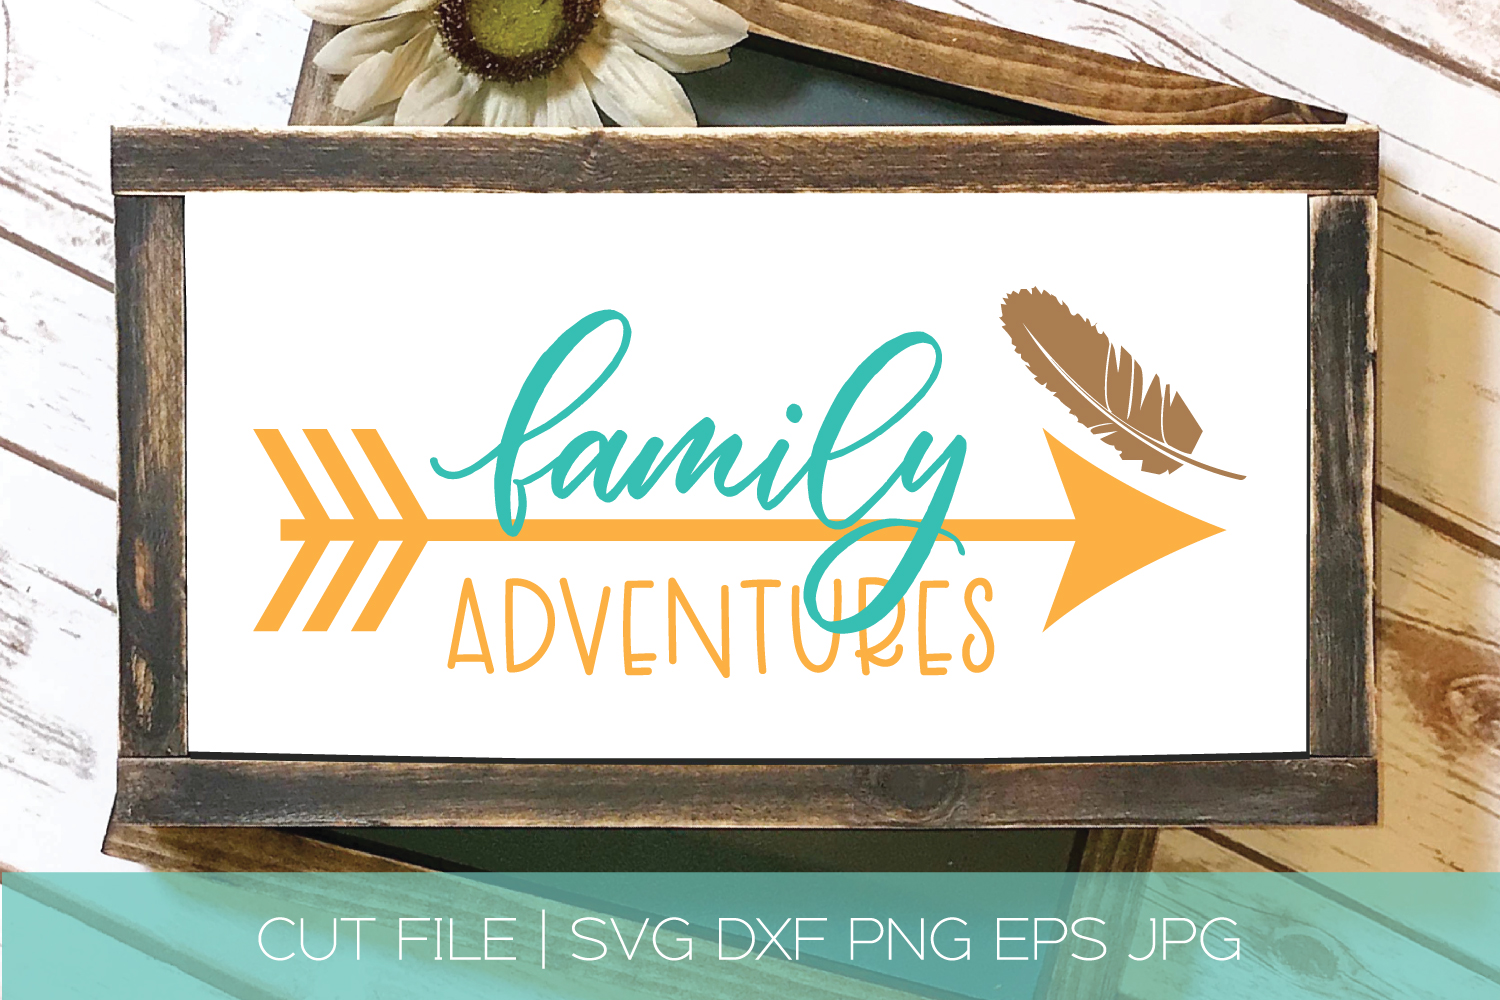 Family Adventures SVG DXF Cut File | Feather Arrow SVG example image 1